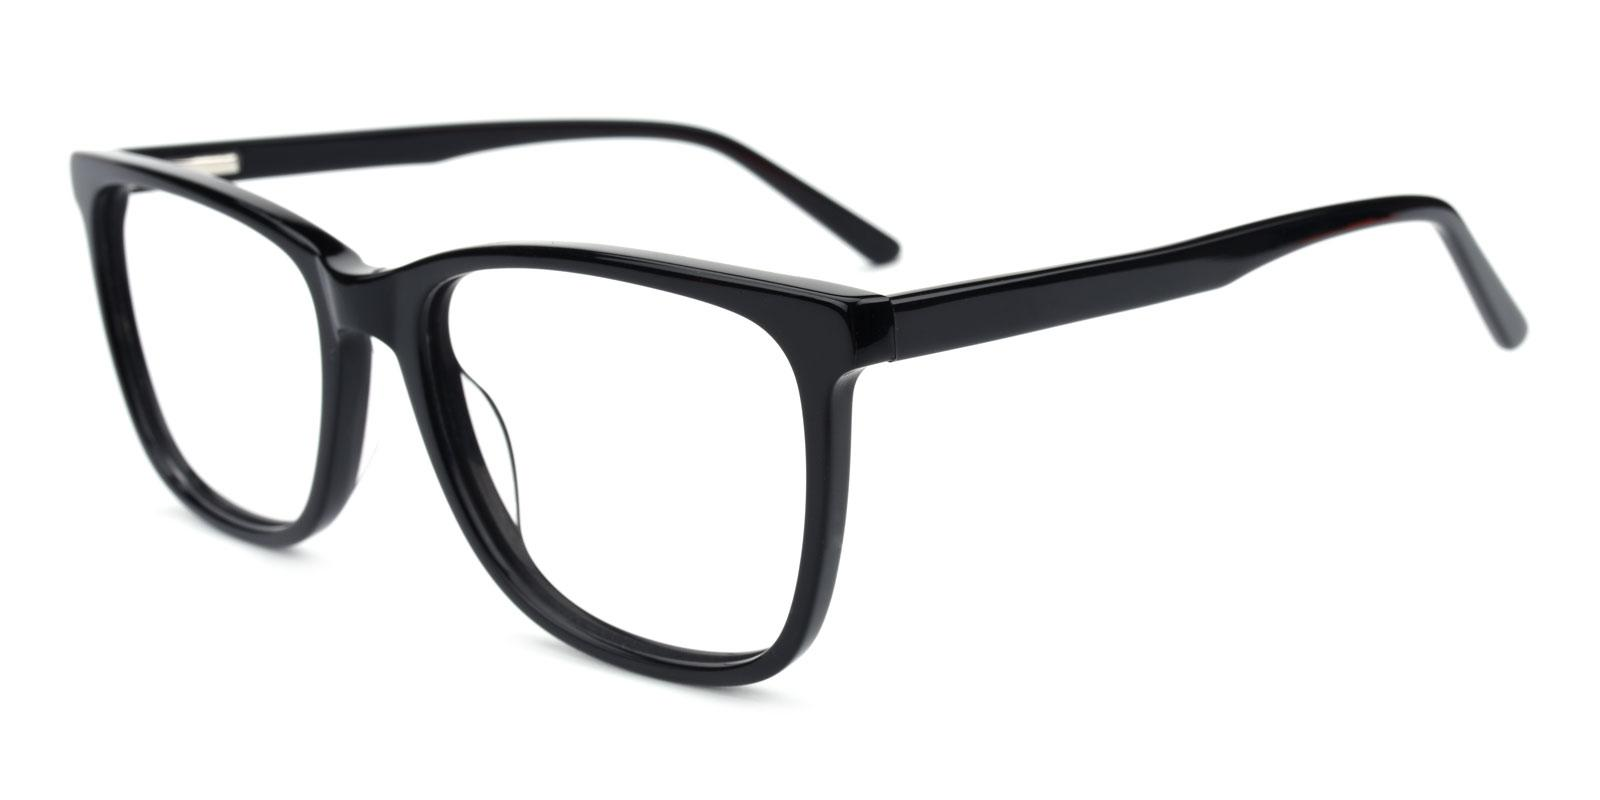 Genter-Black-Square-Acetate-Eyeglasses-additional1